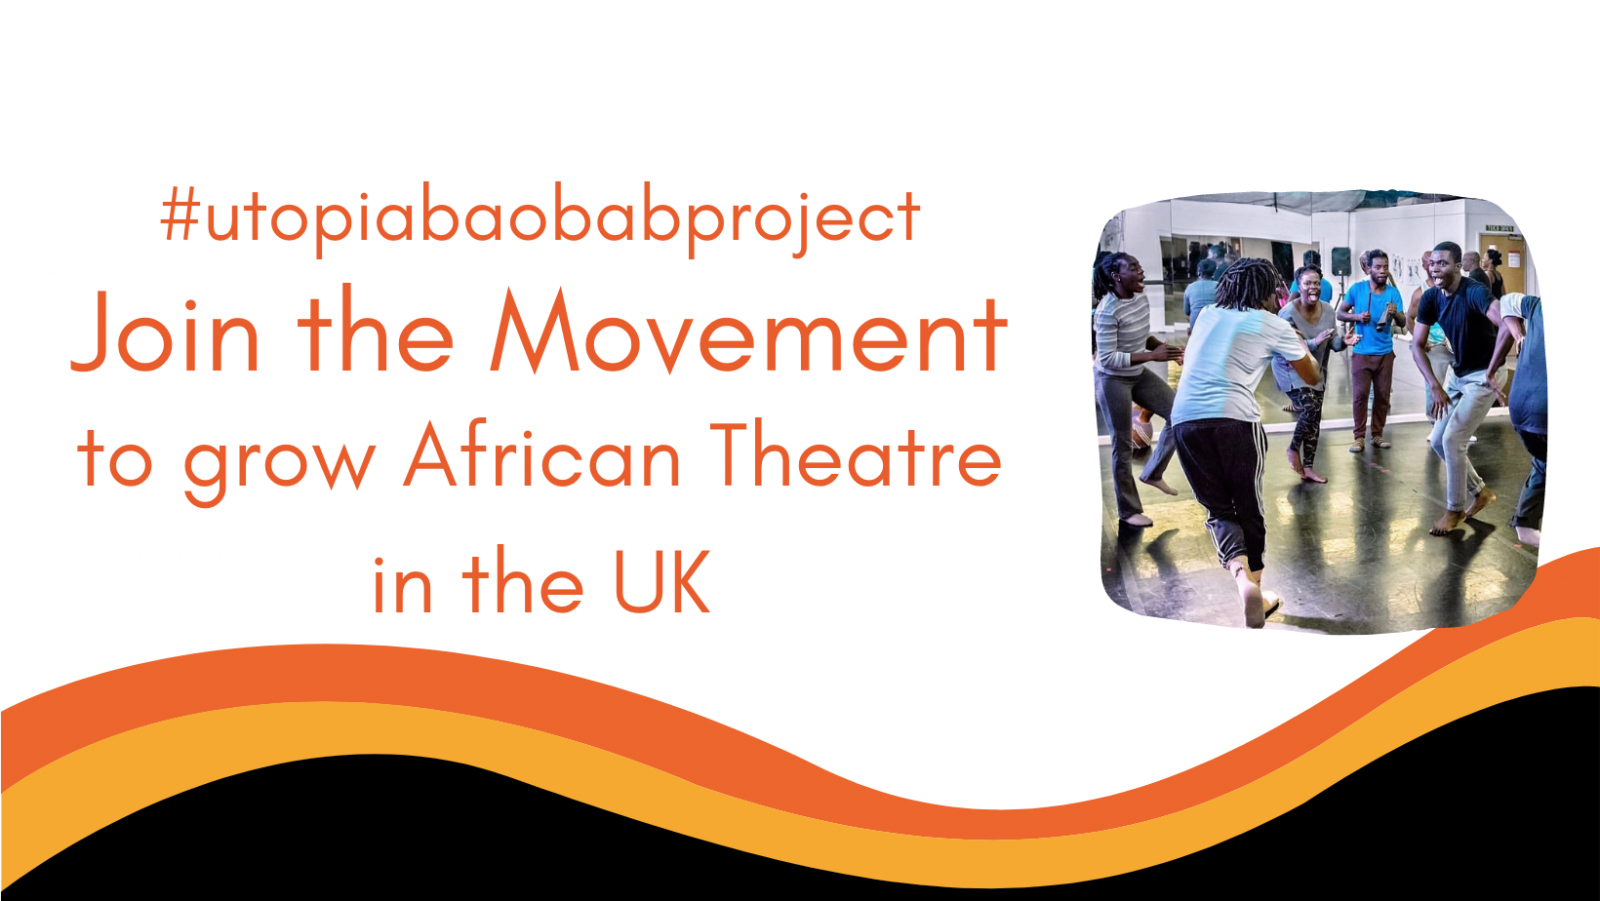 Support the Utopia Baobab Project